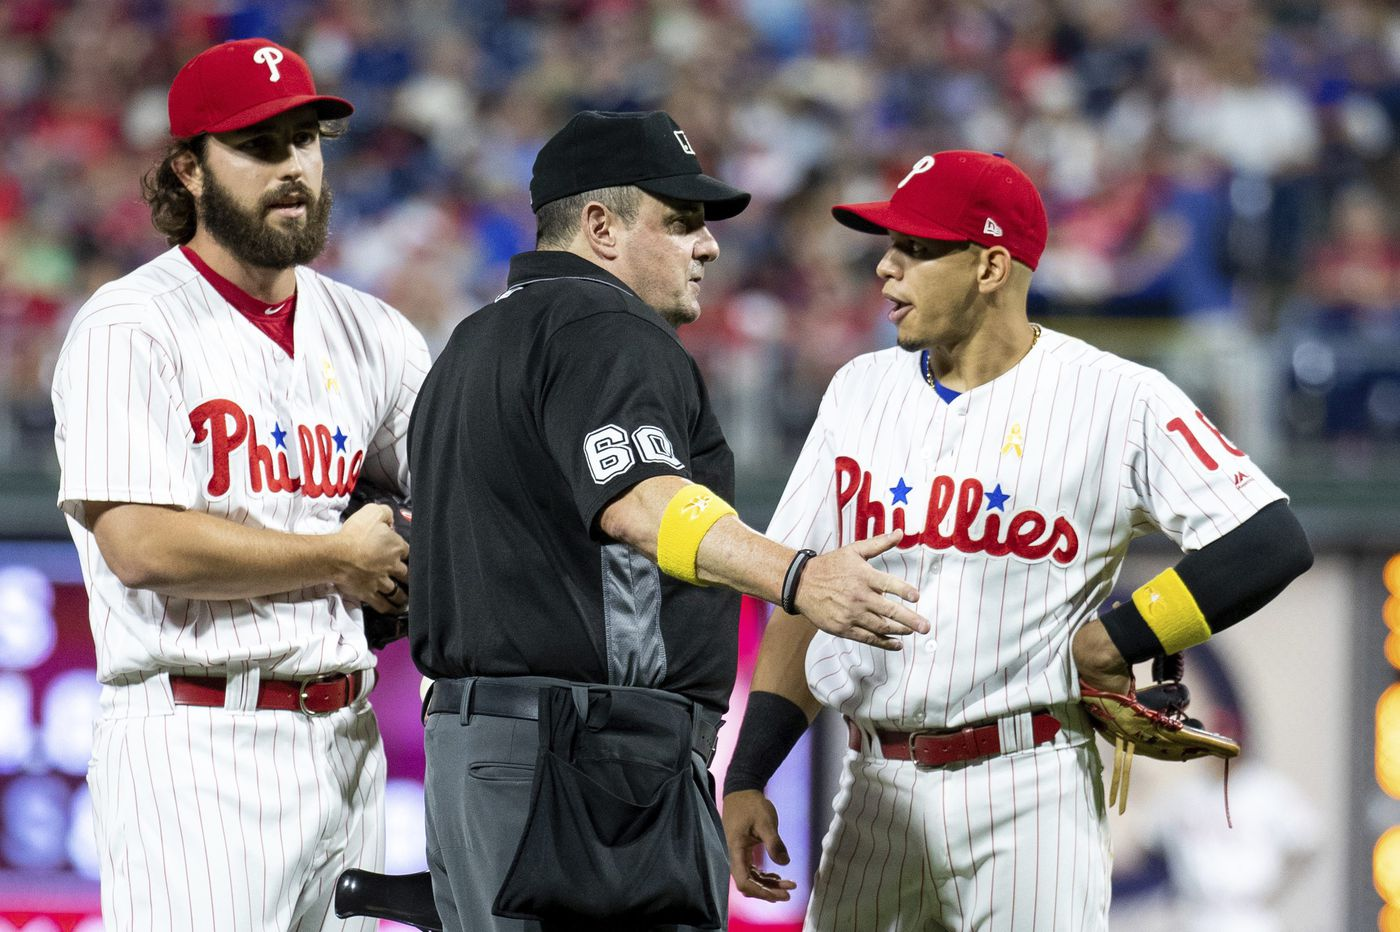 Umpires prevent Phillies reliever from using cheat sheet on opposing hitters